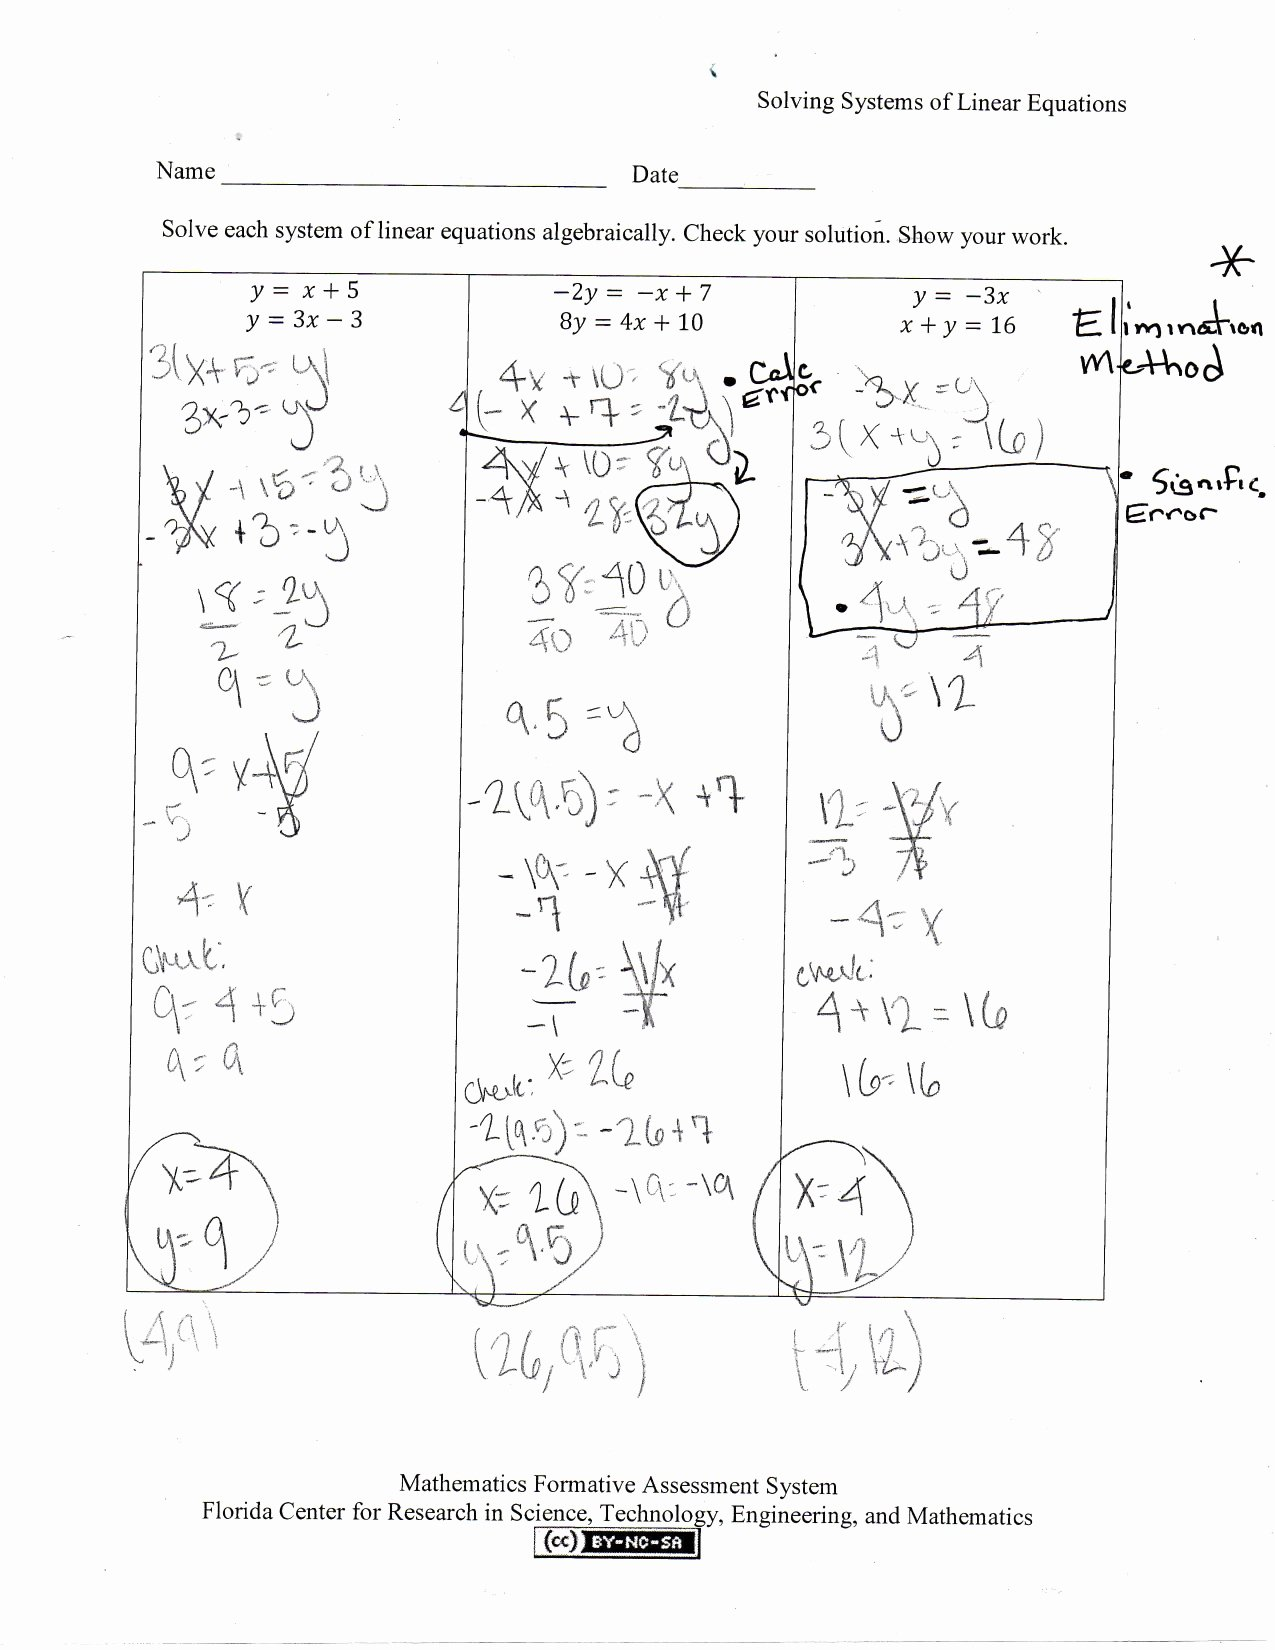 Solving Linear Inequalities Worksheet New solving Systems Of Linear Equations